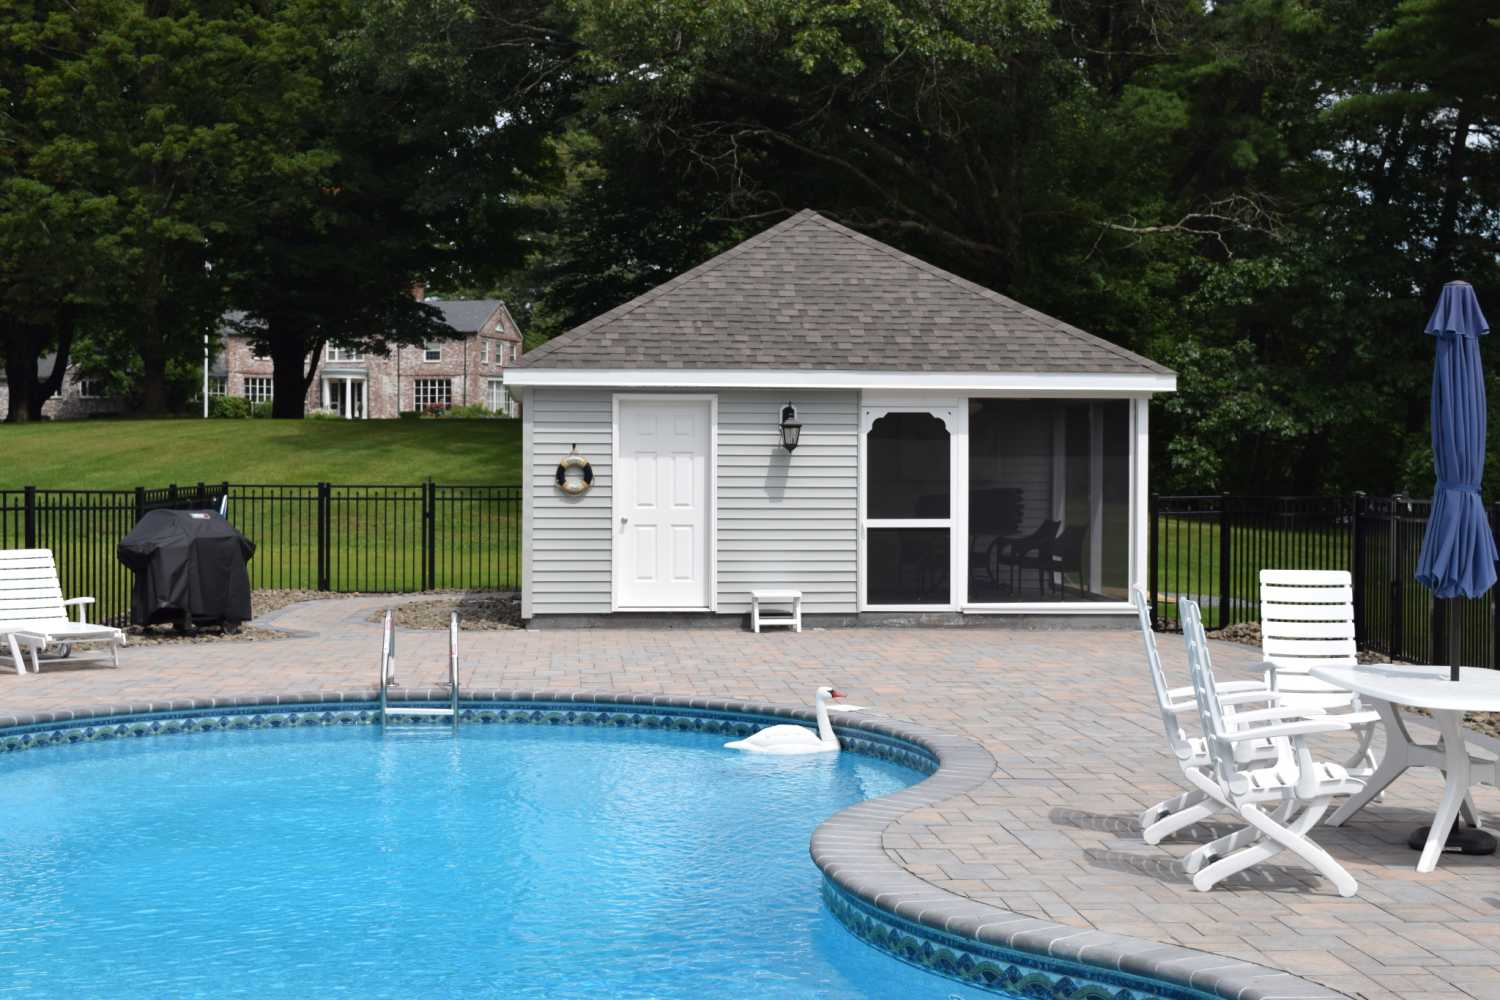 Poolhouse With Storage Area And A Full Screened In Sitting Area With  Plumbing And Electric.